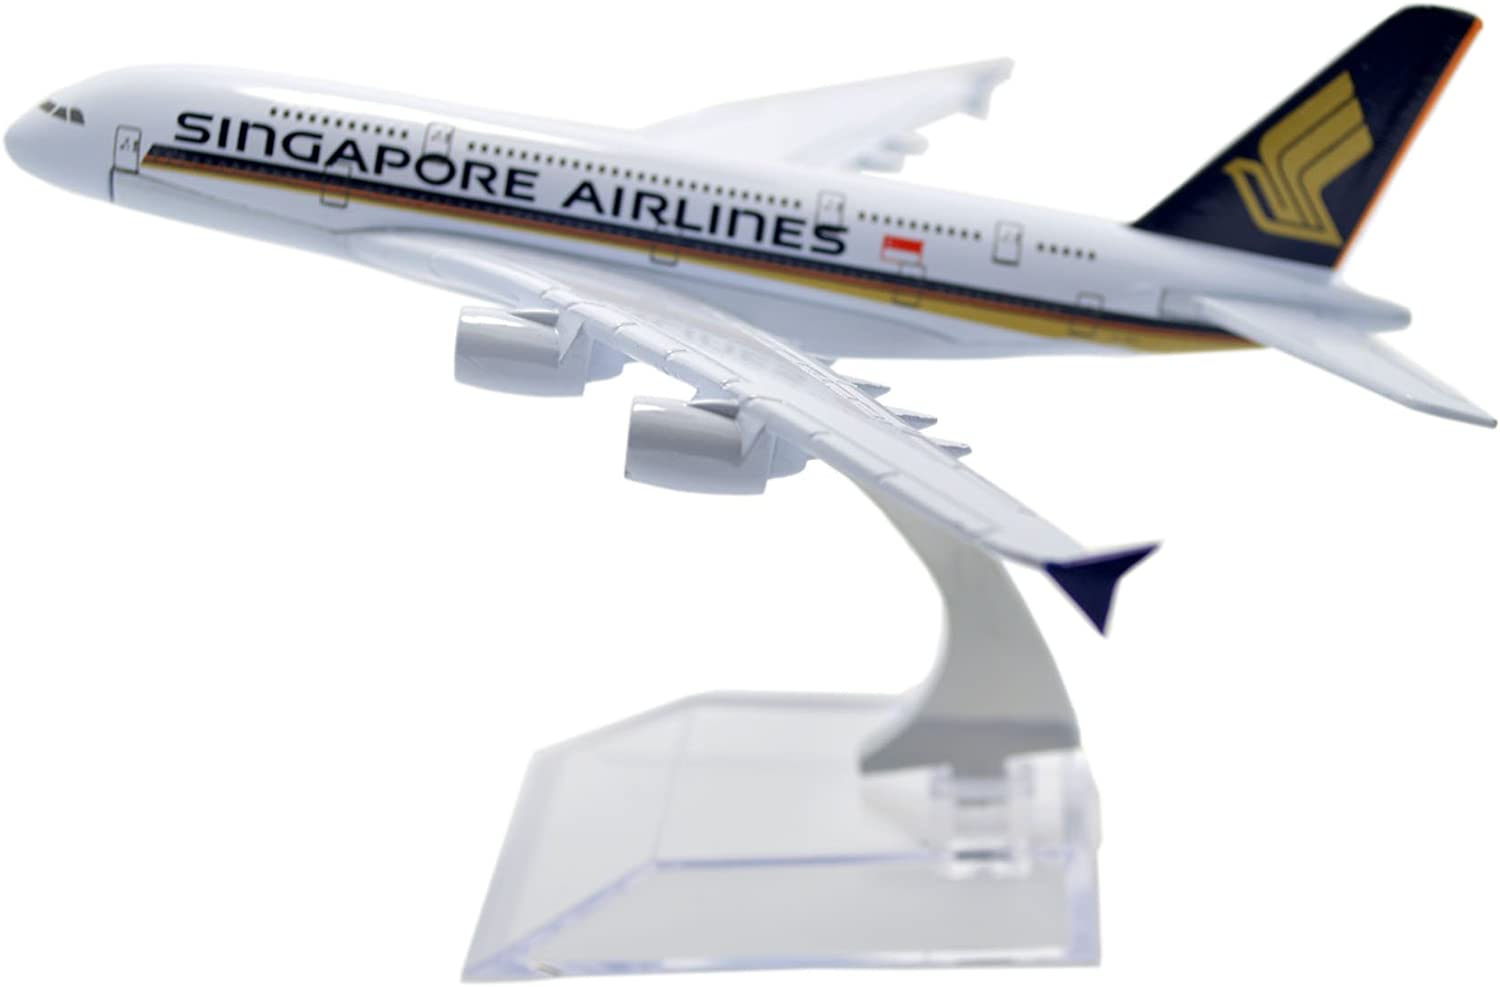 16cm Singapore Airline Airbus A380 Airlines Metal Desk Aircraft Plane Model SIA